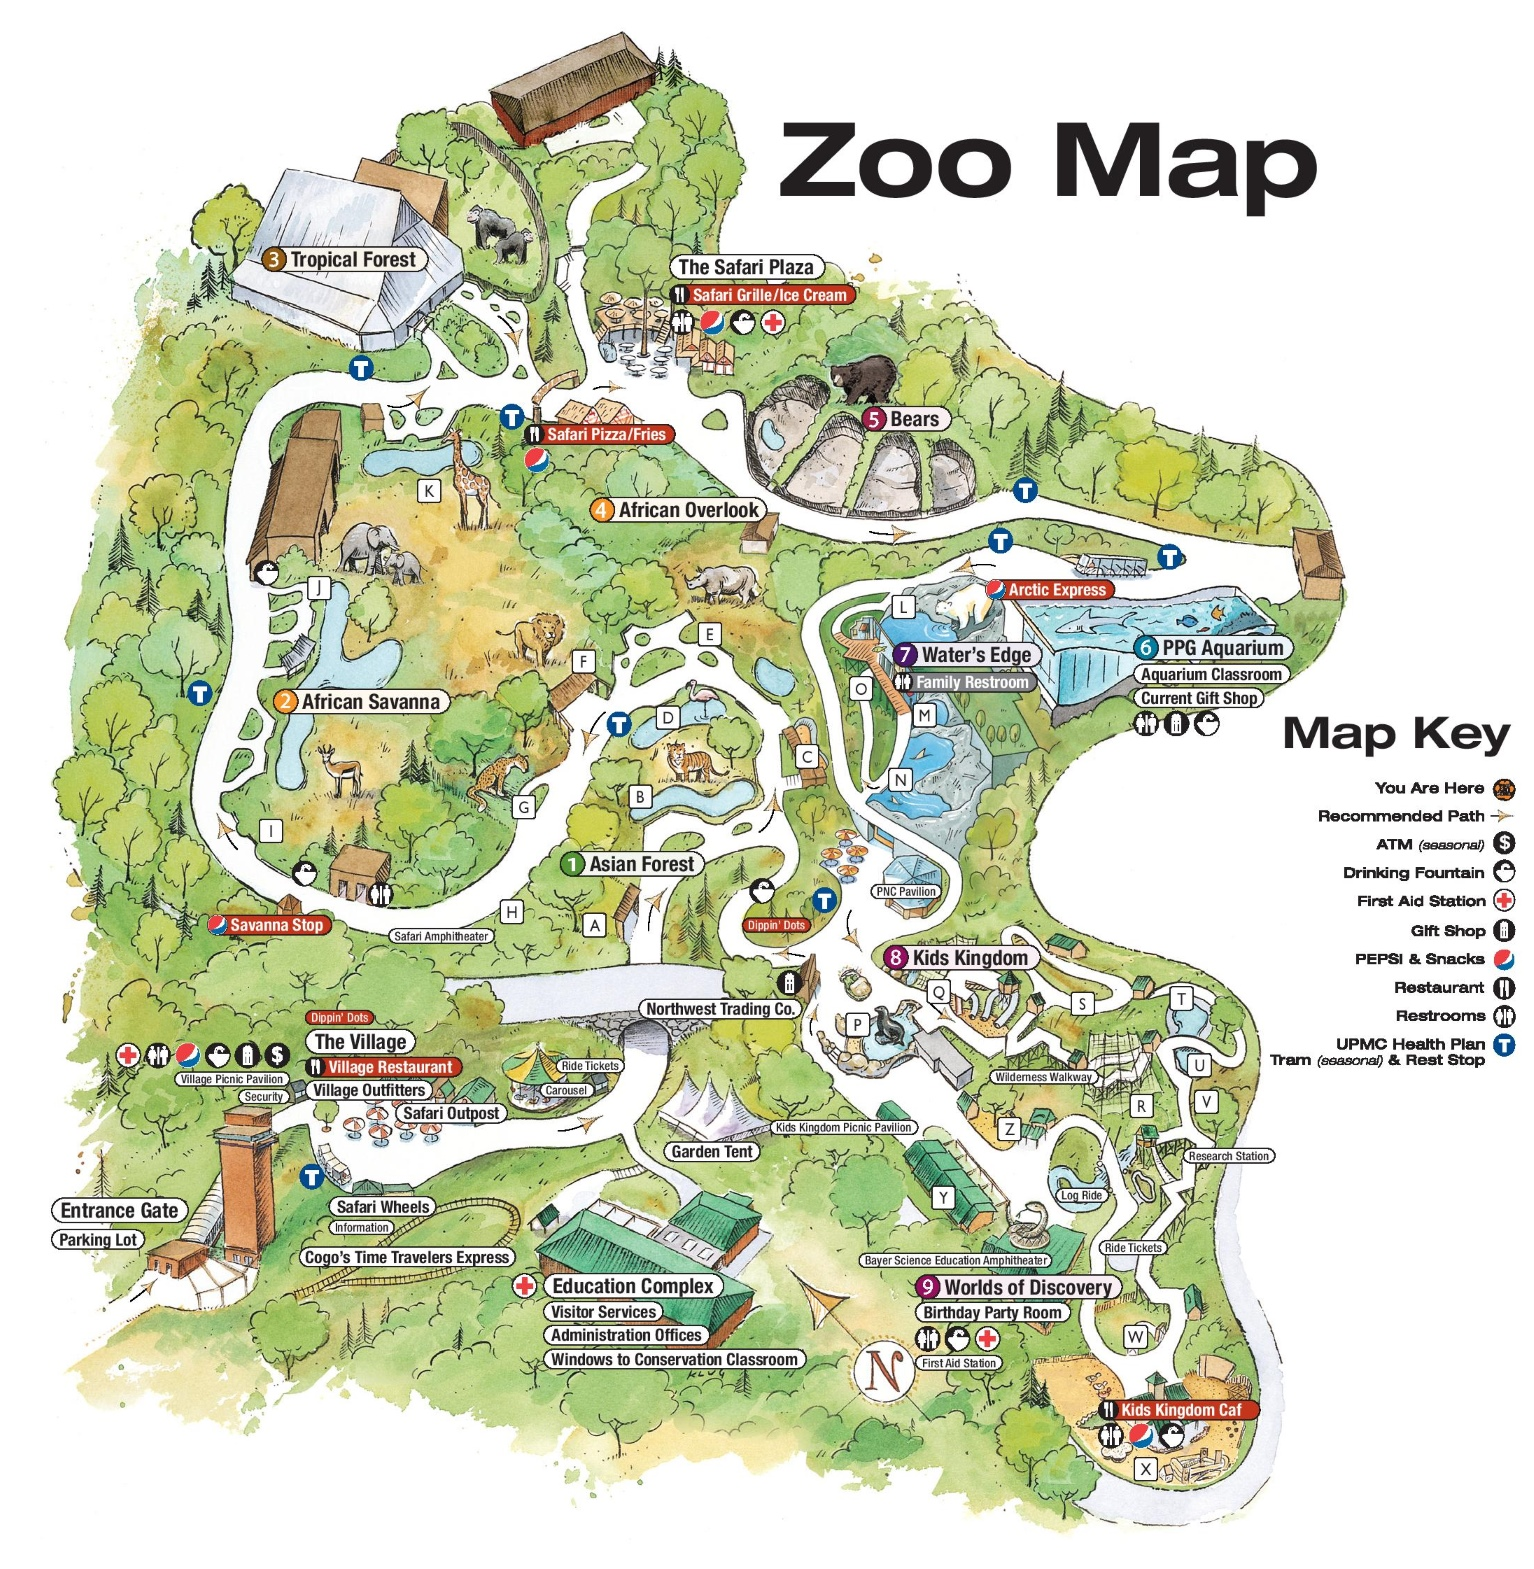 Los Angeles Zoo Map Best Image Konpax 2018